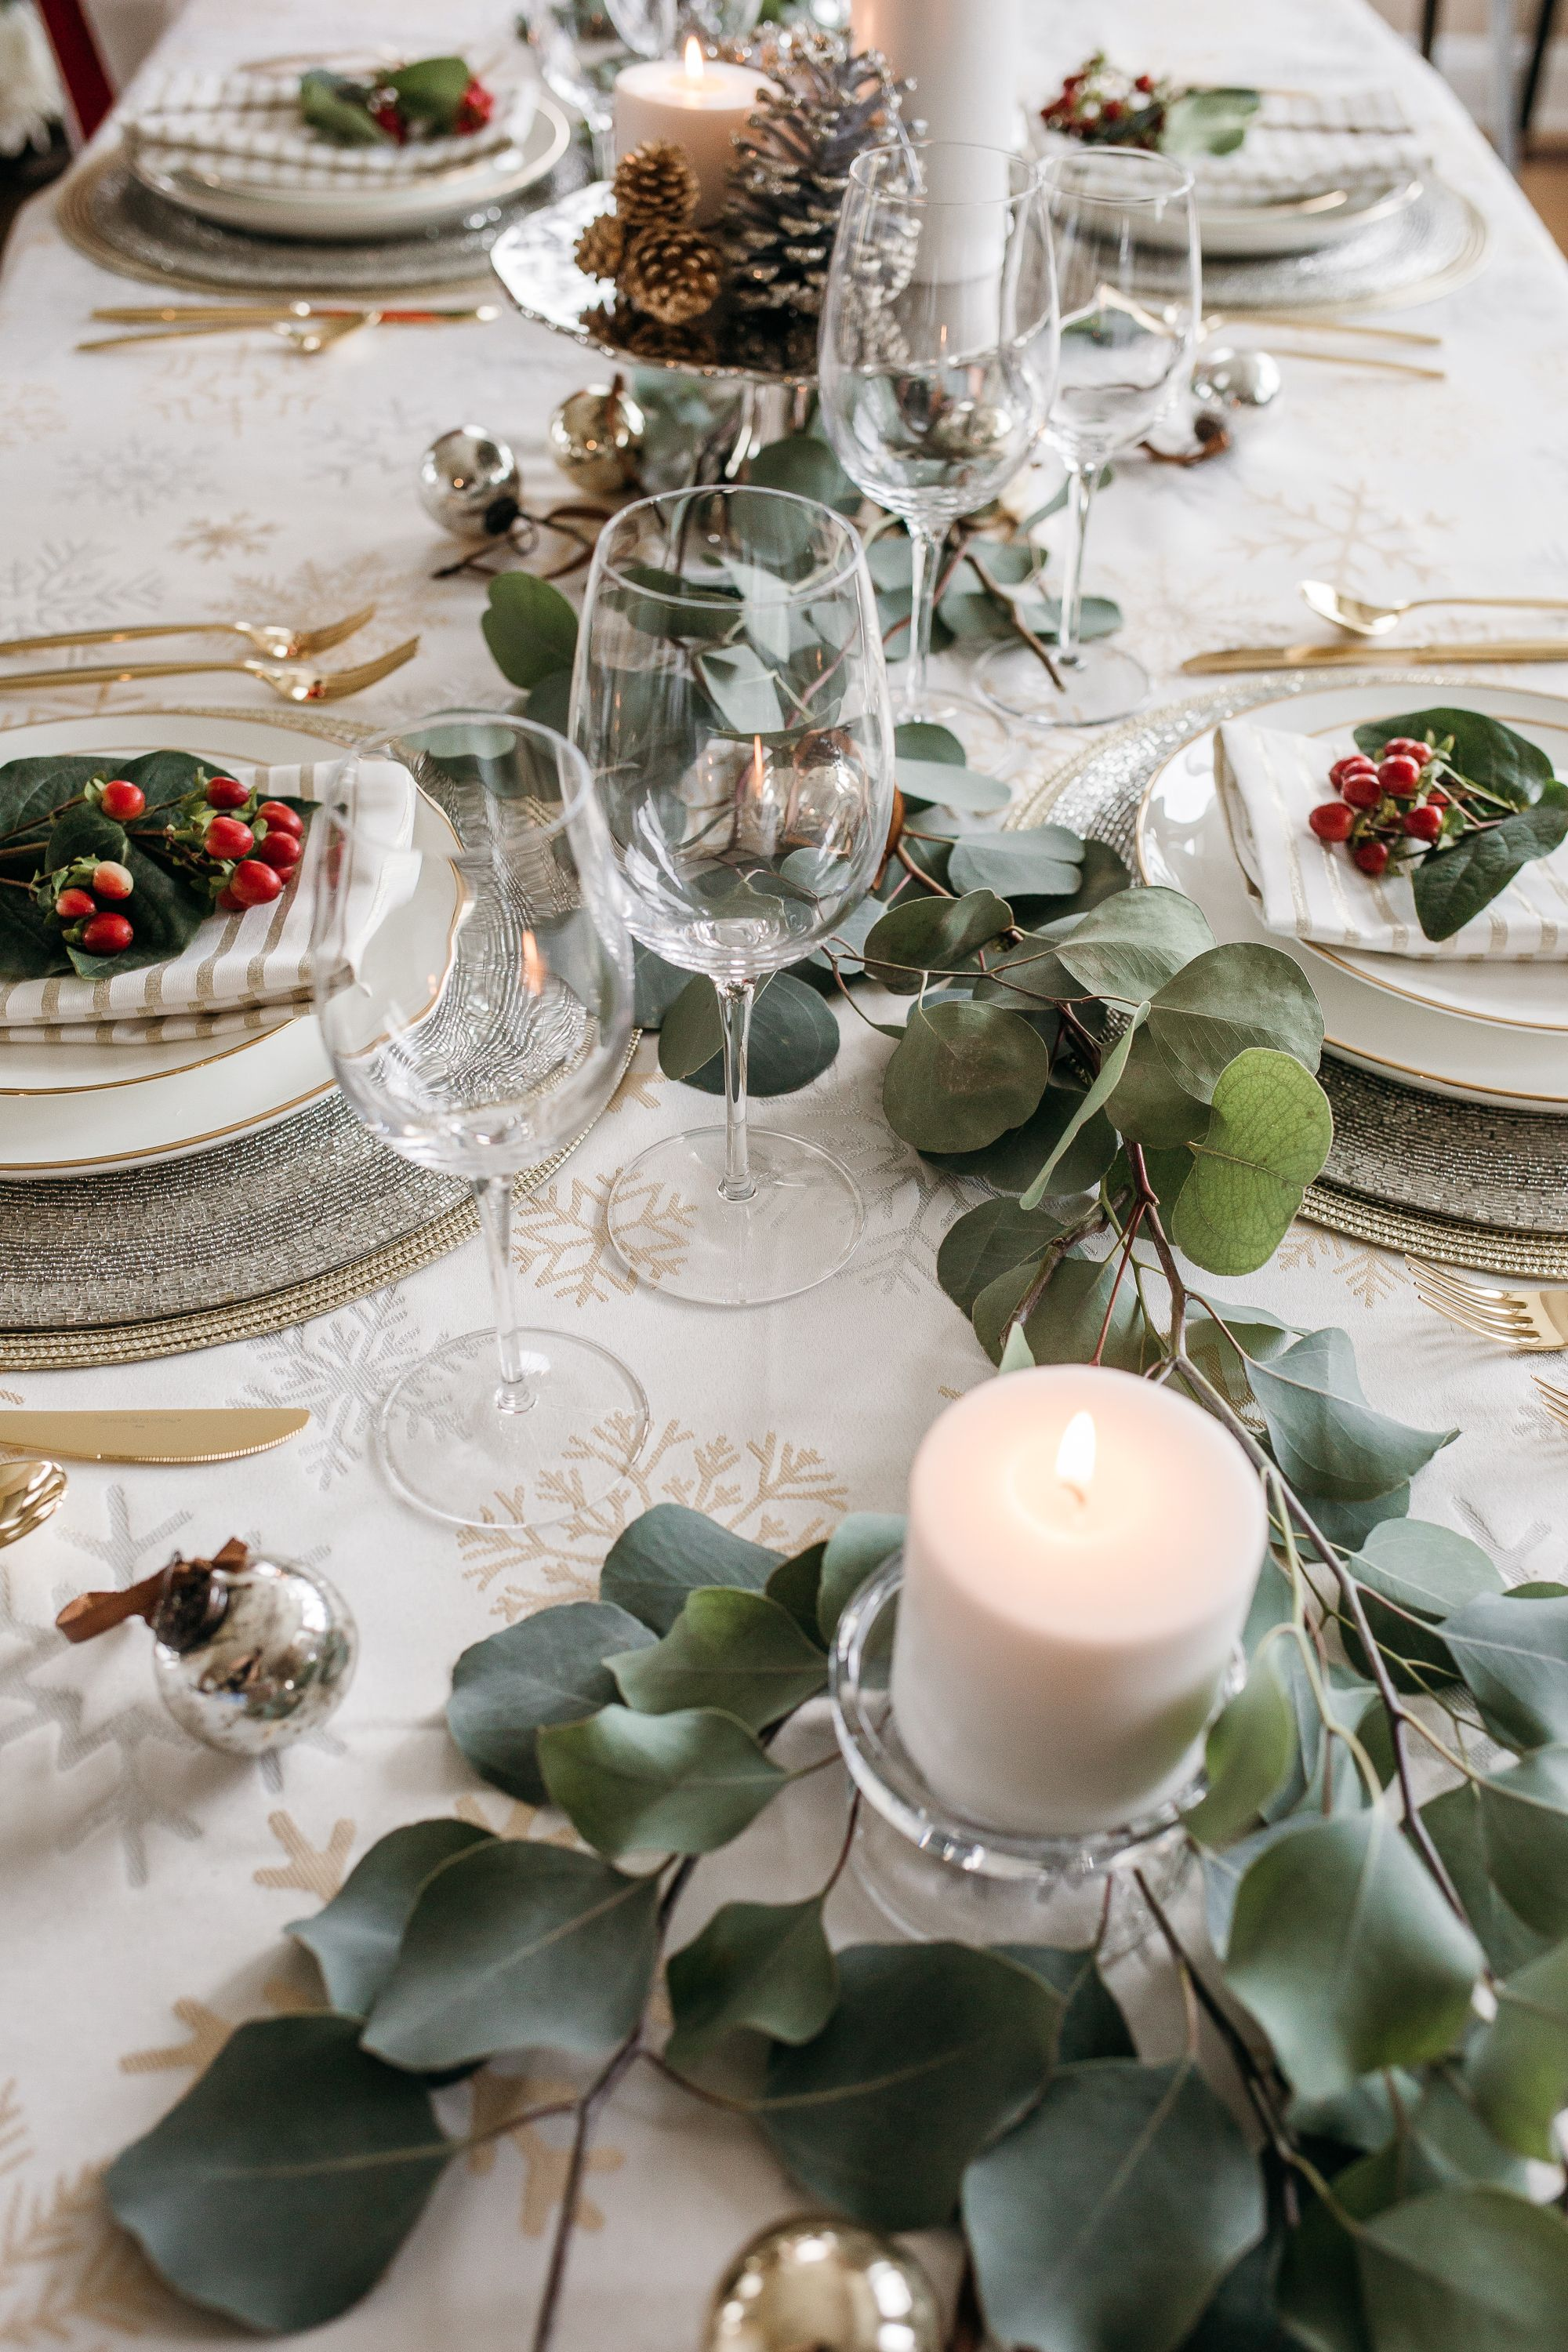 Christmas Table Inspiration Set The Mood For The Holiday Season With The Glitzy Christ Christmas Table Christmas Table Inspiration Christmas Table Decorations